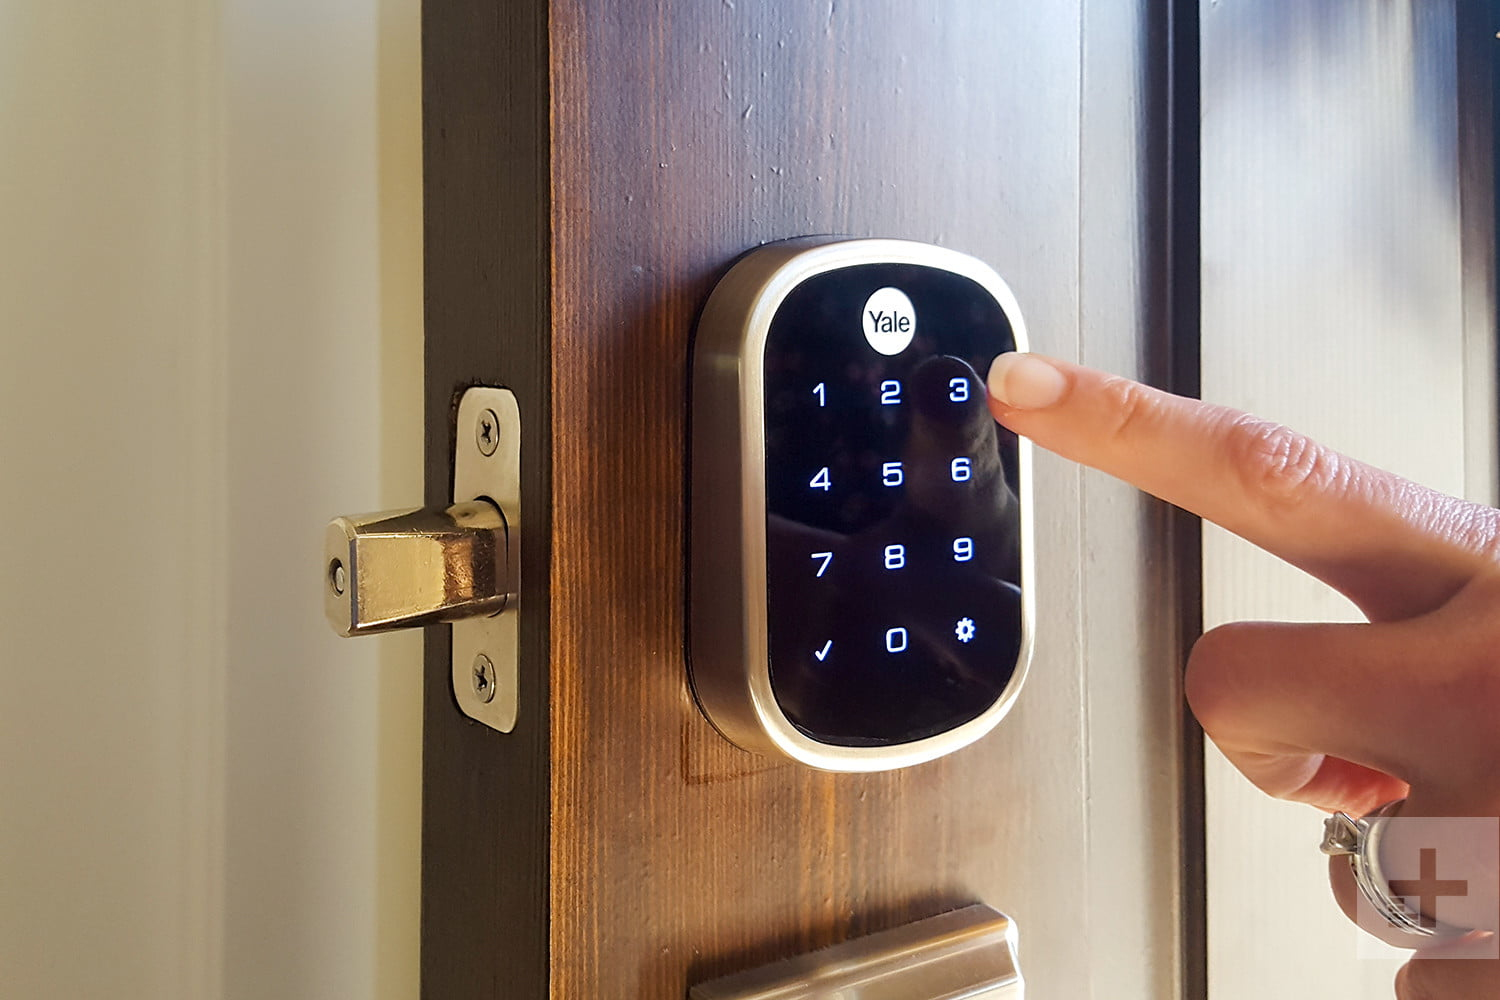 Yale And August Team Up On The Assure Lock Smart Lock